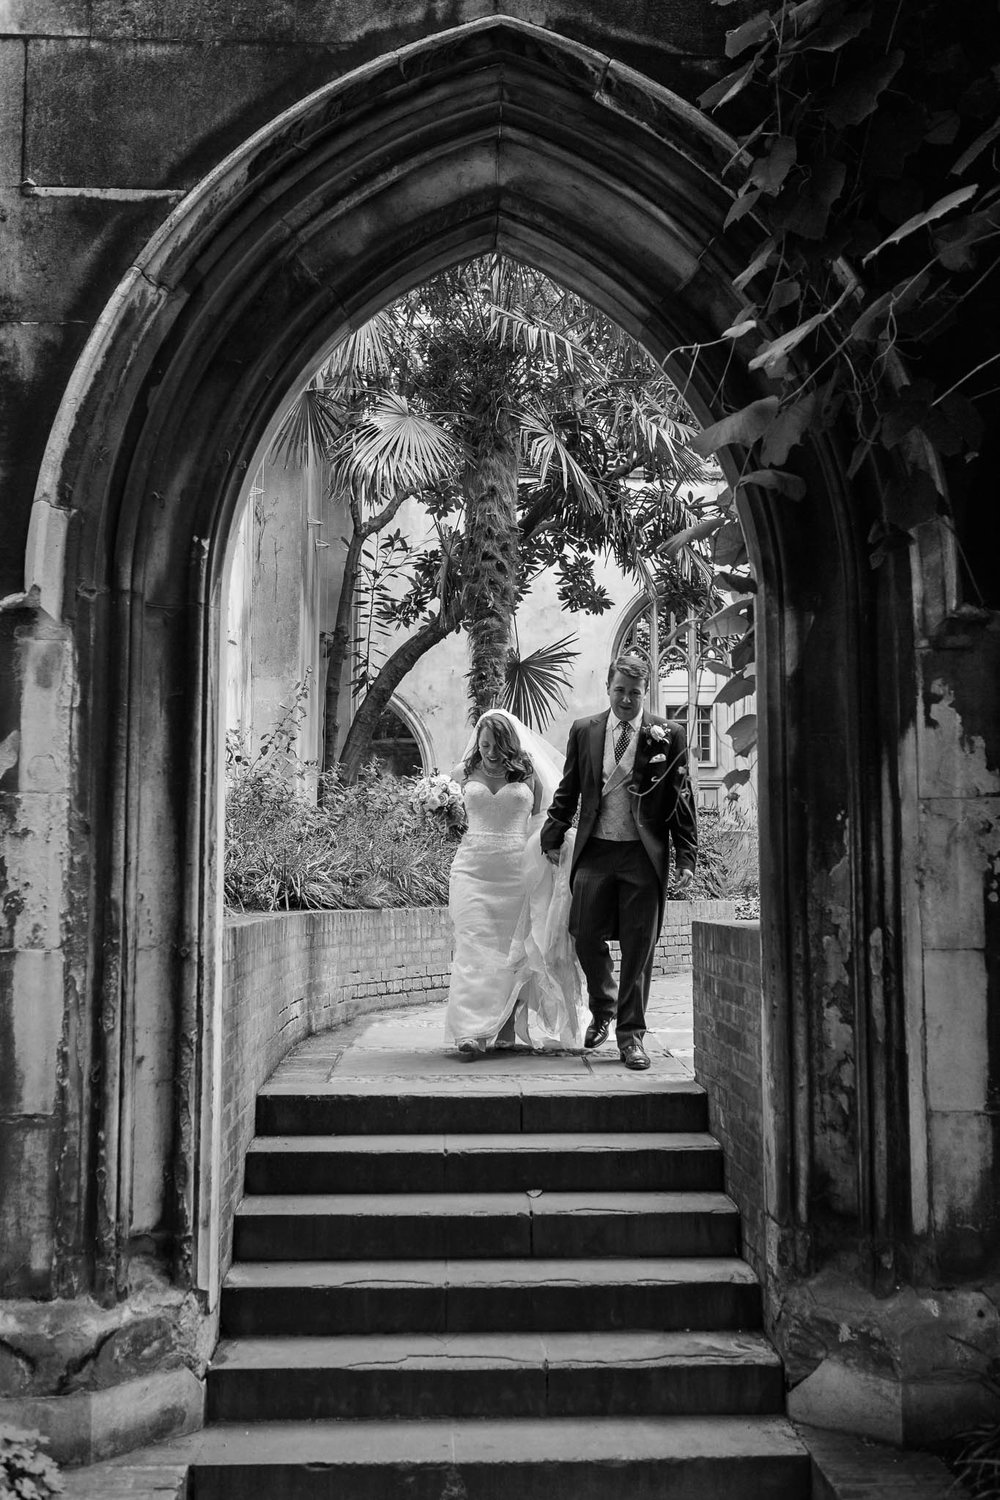 St Dunstan in the East - Image by me- See full wedding gallery at  St Dunstan in the East here.